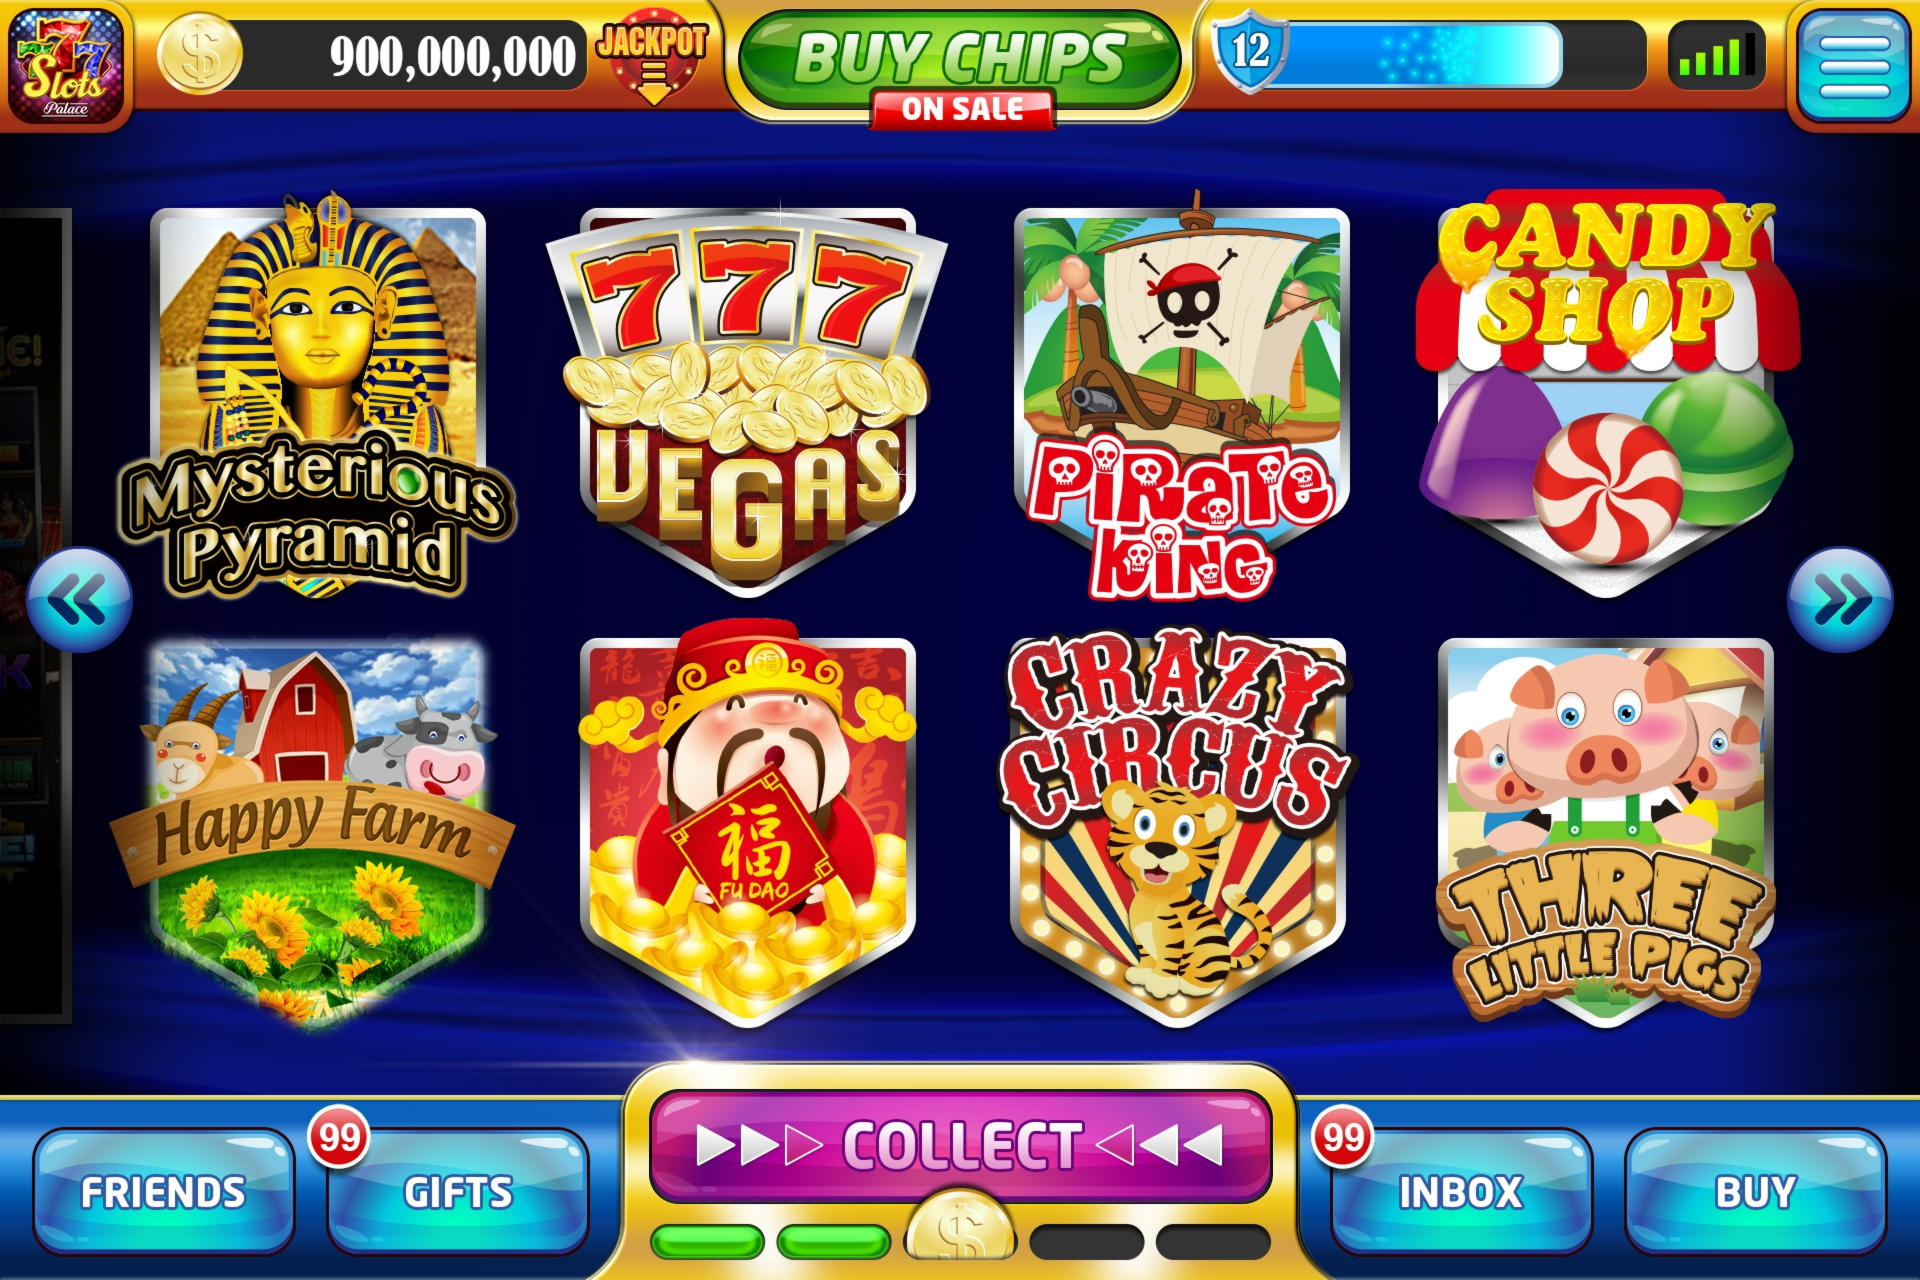 915% Match Bonus at Video Slots